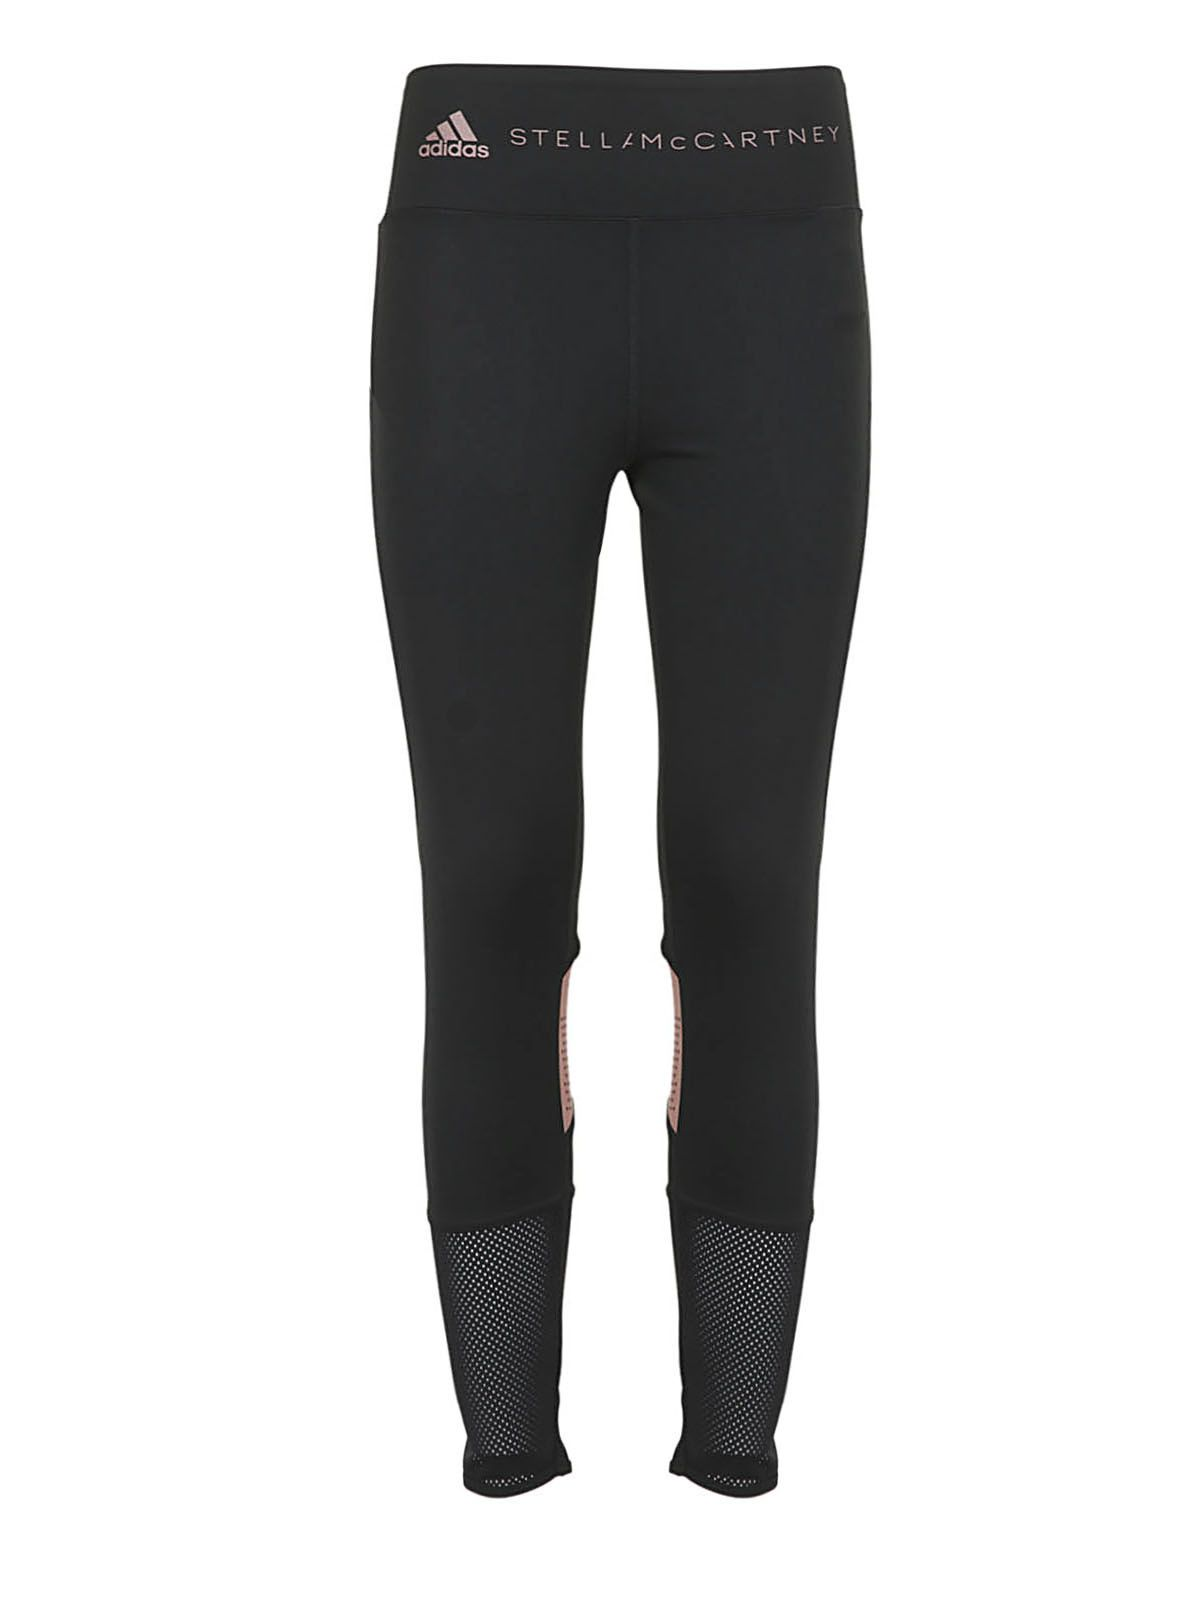 Stella Mccartney Training Leggings